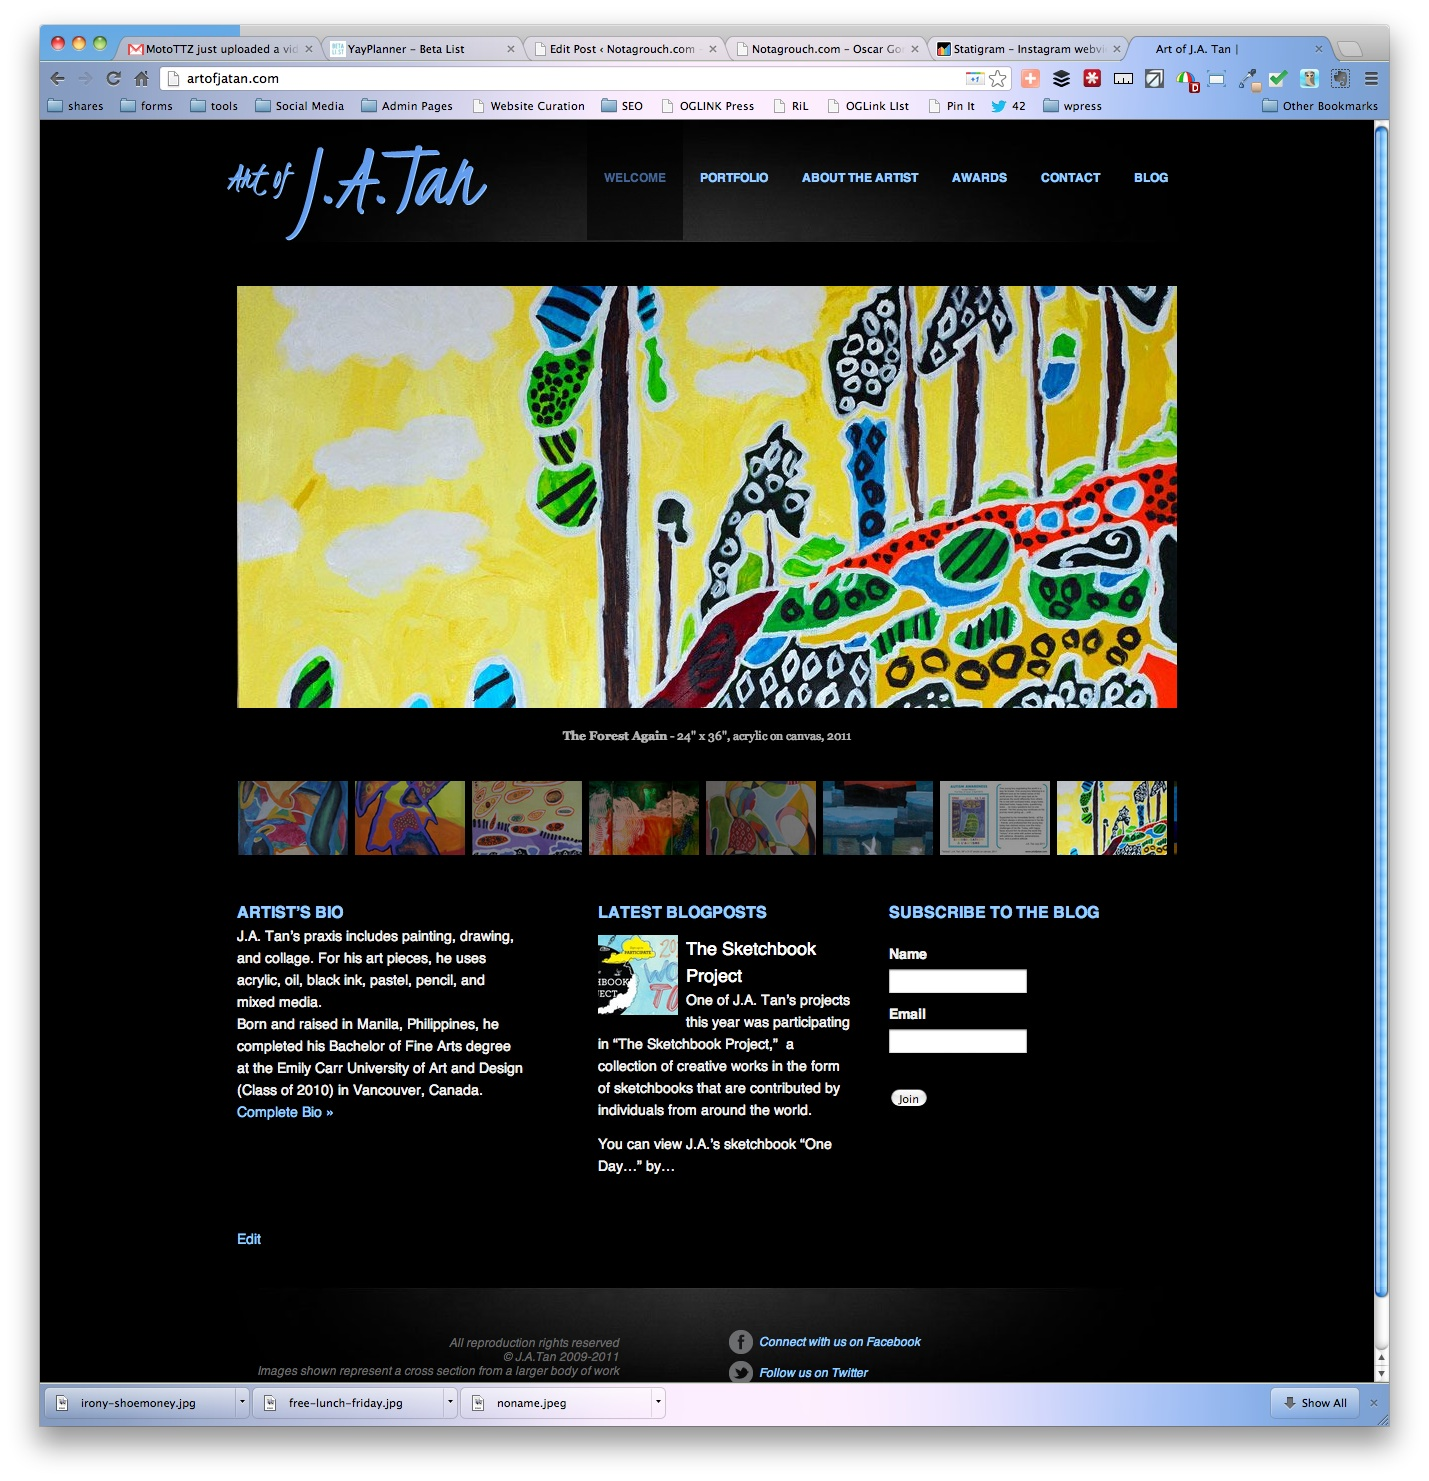 Autistic Artist J.A. Tan's Gallery online